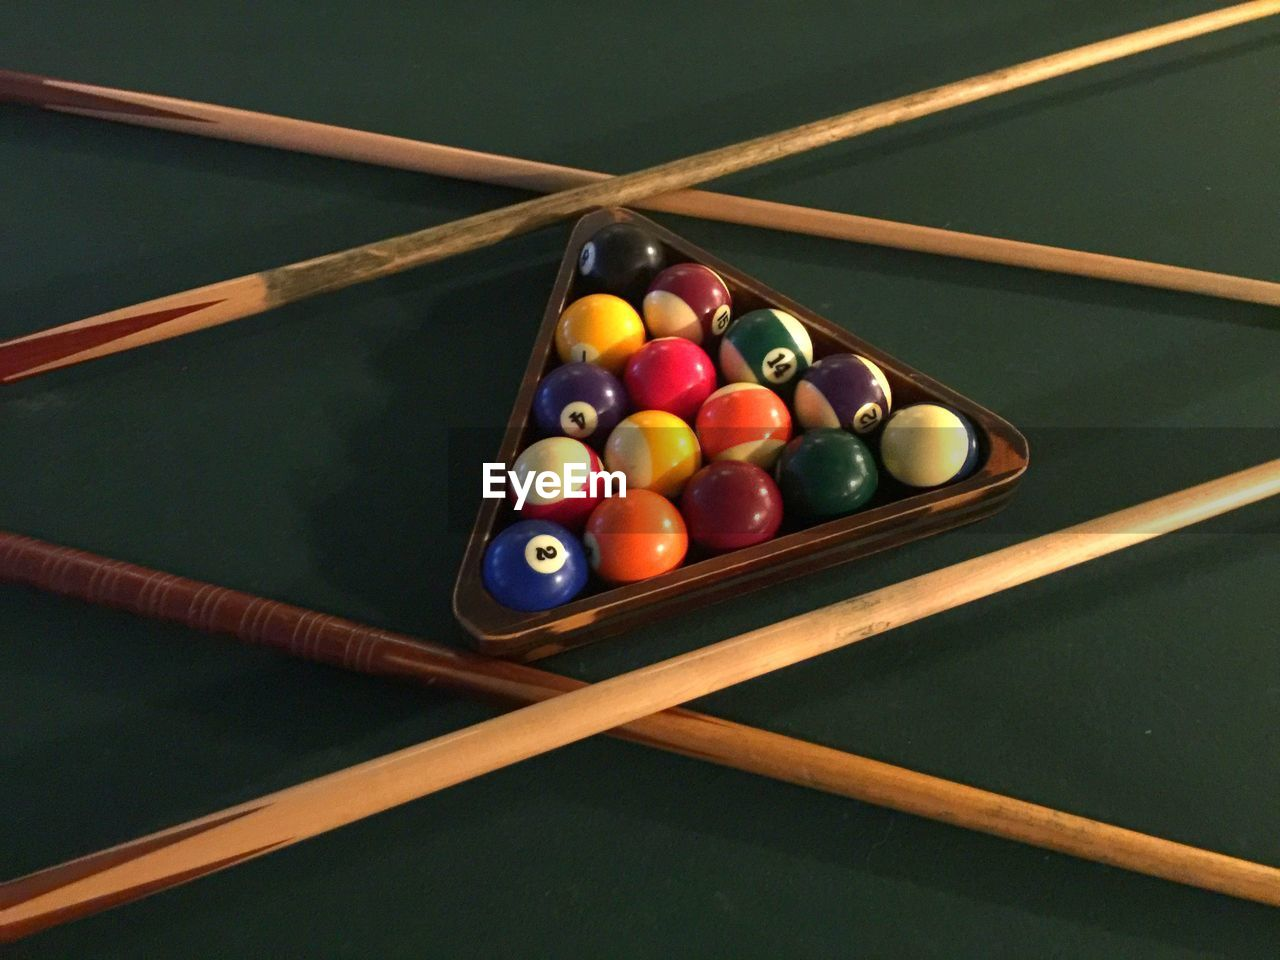 ball, indoors, table, multi colored, pool - cue sport, pool ball, still life, no people, pool table, sport, high angle view, large group of objects, wood - material, leisure games, sphere, triangle shape, arrangement, shape, pool cue, leisure activity